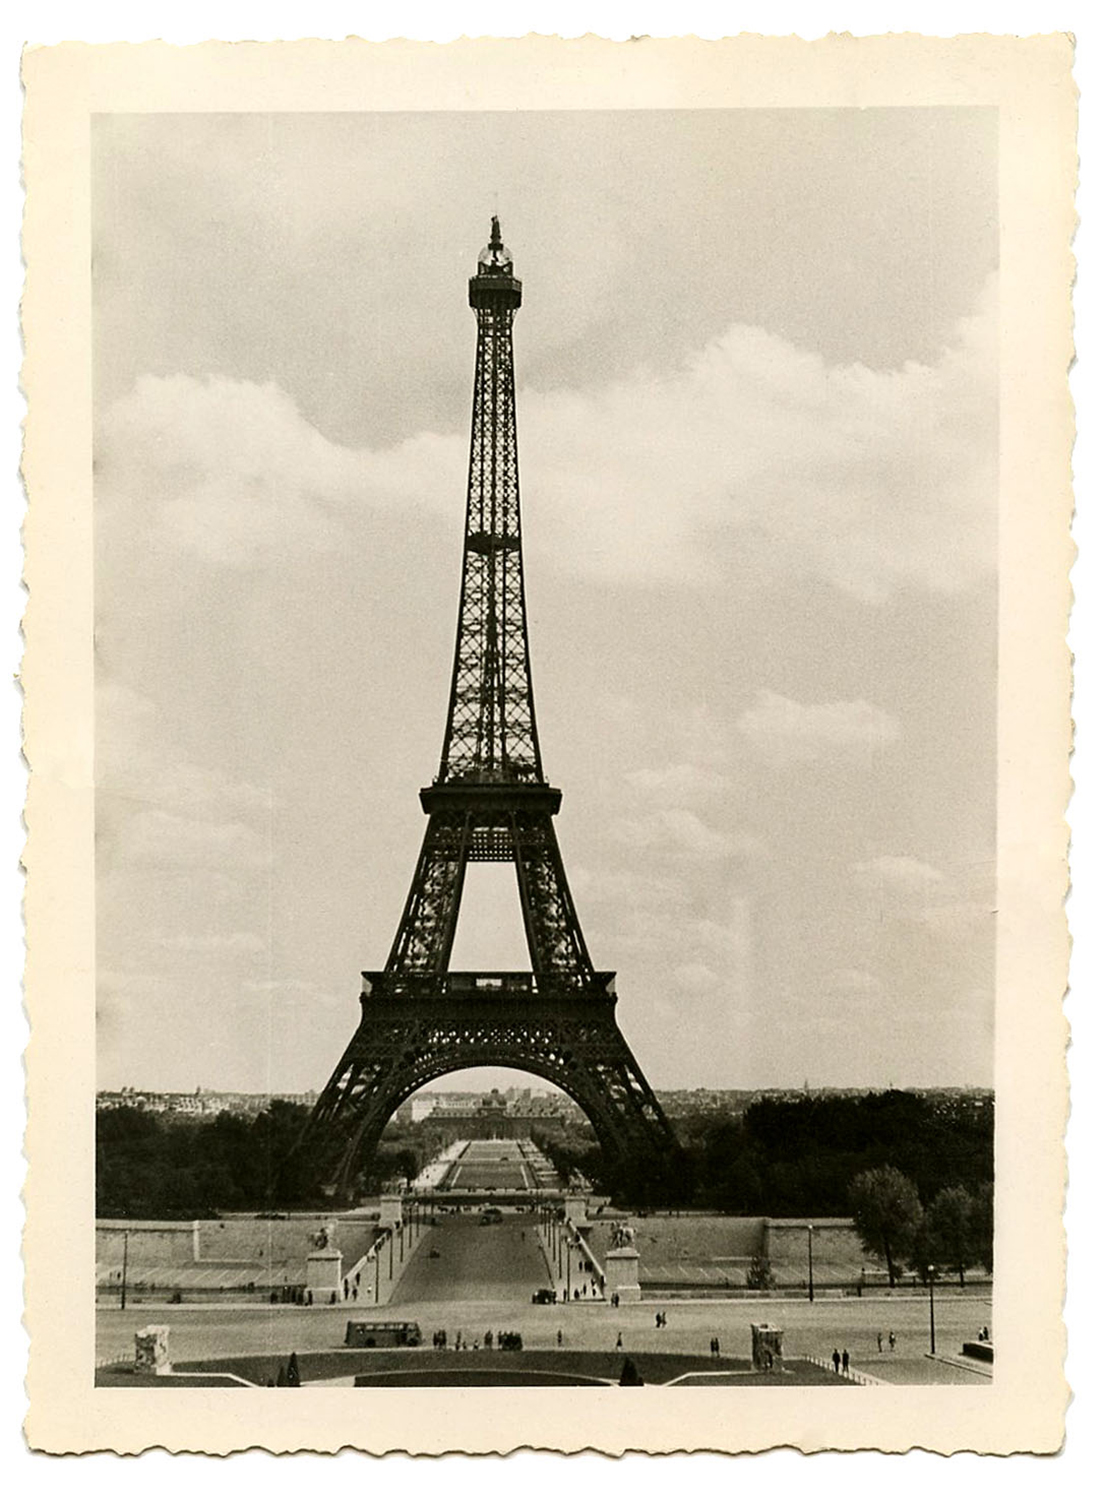 Eiffel Tower Photo Vintage BW